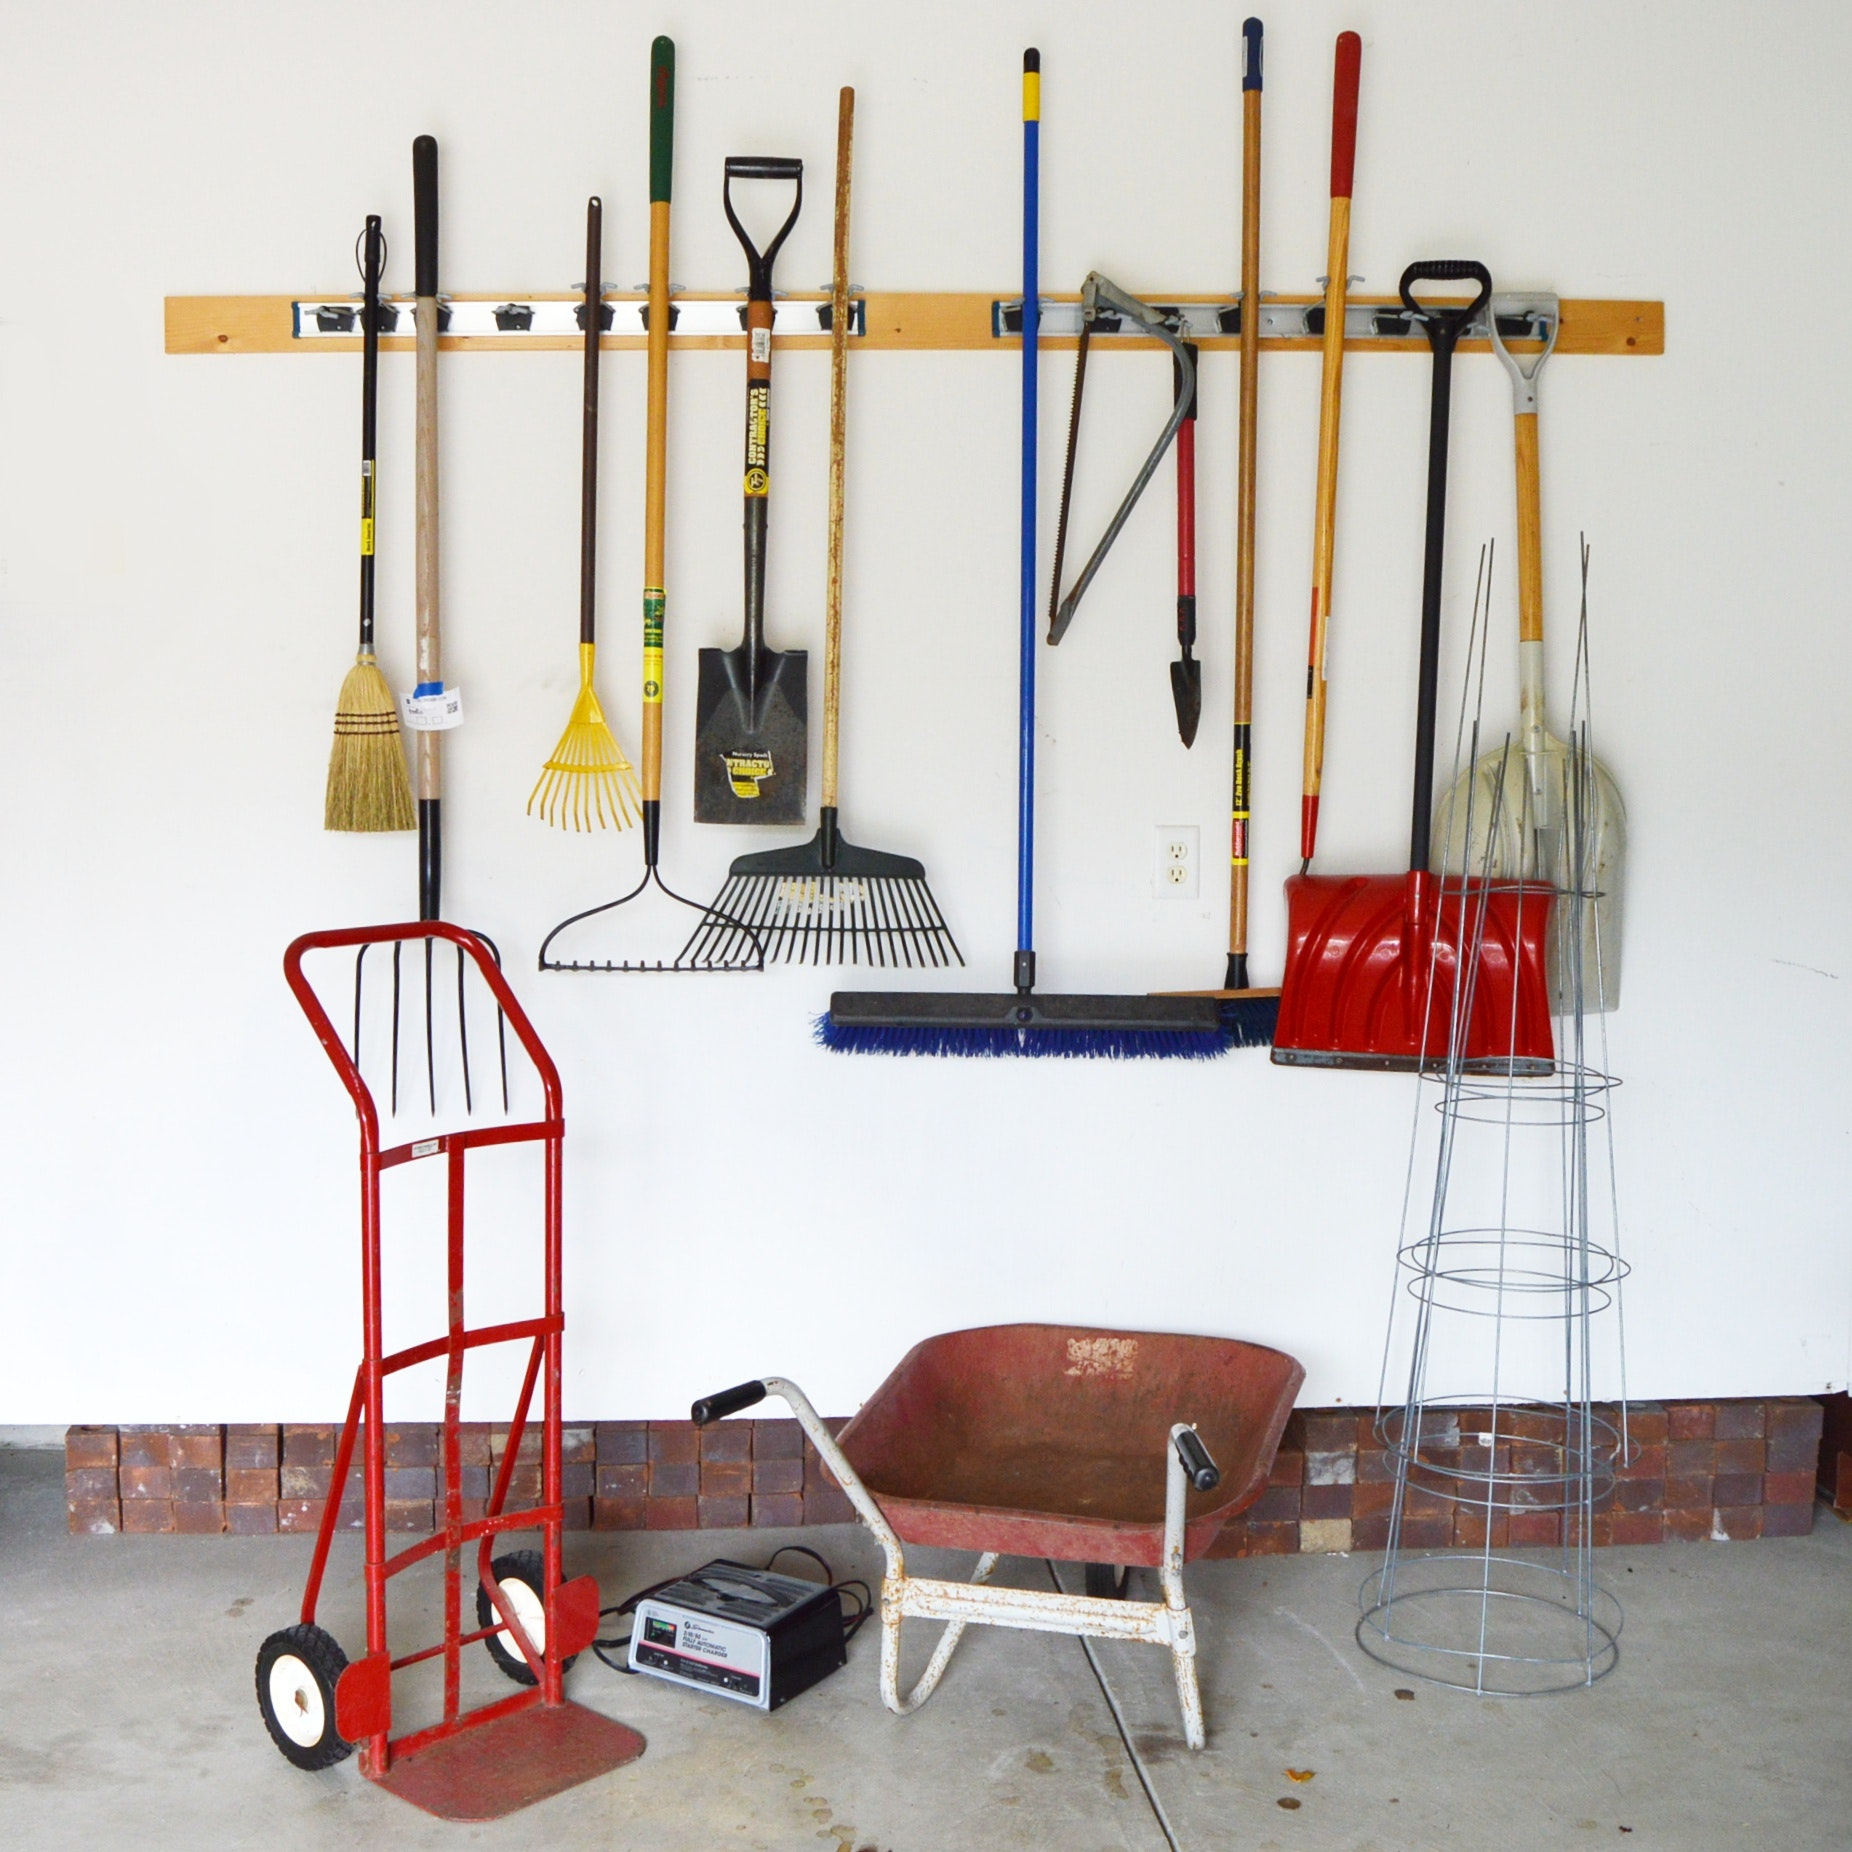 Lawn and Garden Tools, Battery Charger, Wheel Cart and Wheelbarrow